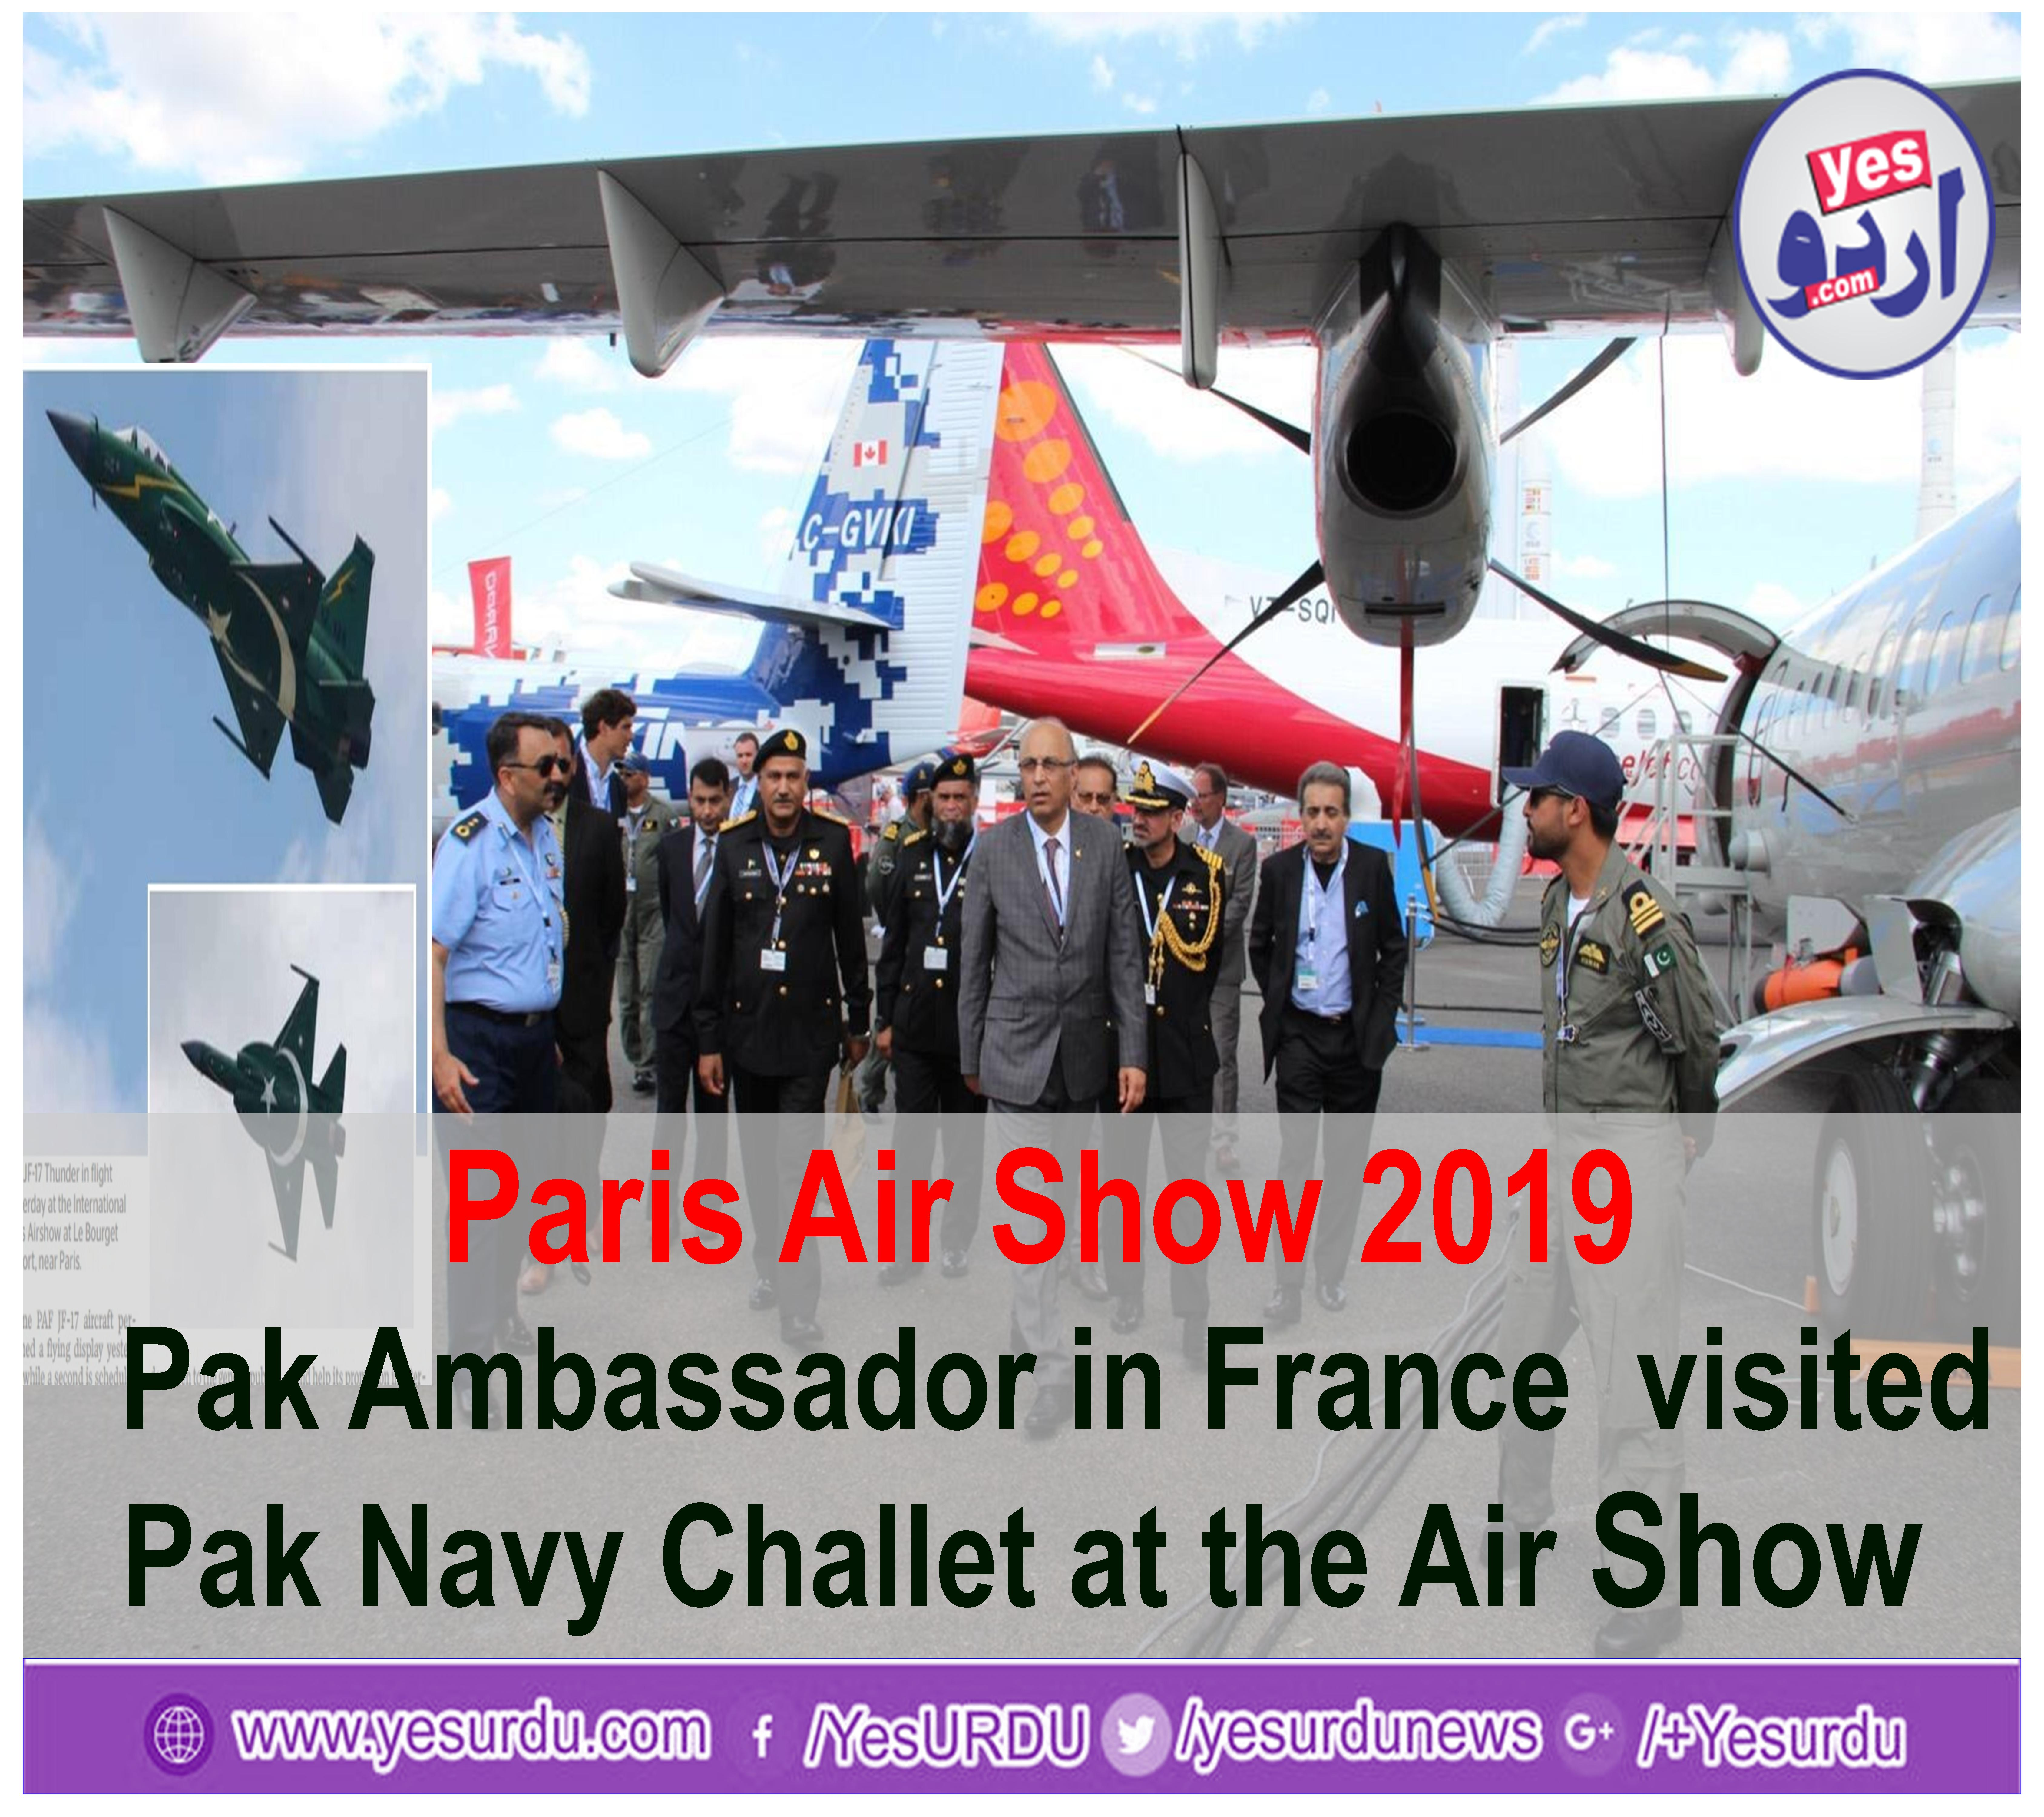 Paris,Air,Show,2019,,Pak,Ambassador,in,France,Moeen,ul,Haq,visited,Pak,Navy,Challet,at,the,Air,Show.,The,Ambassador,welcomed,the,active,participation,of,Pak,Air,Force,and,,Navy,at,the, Airshow.